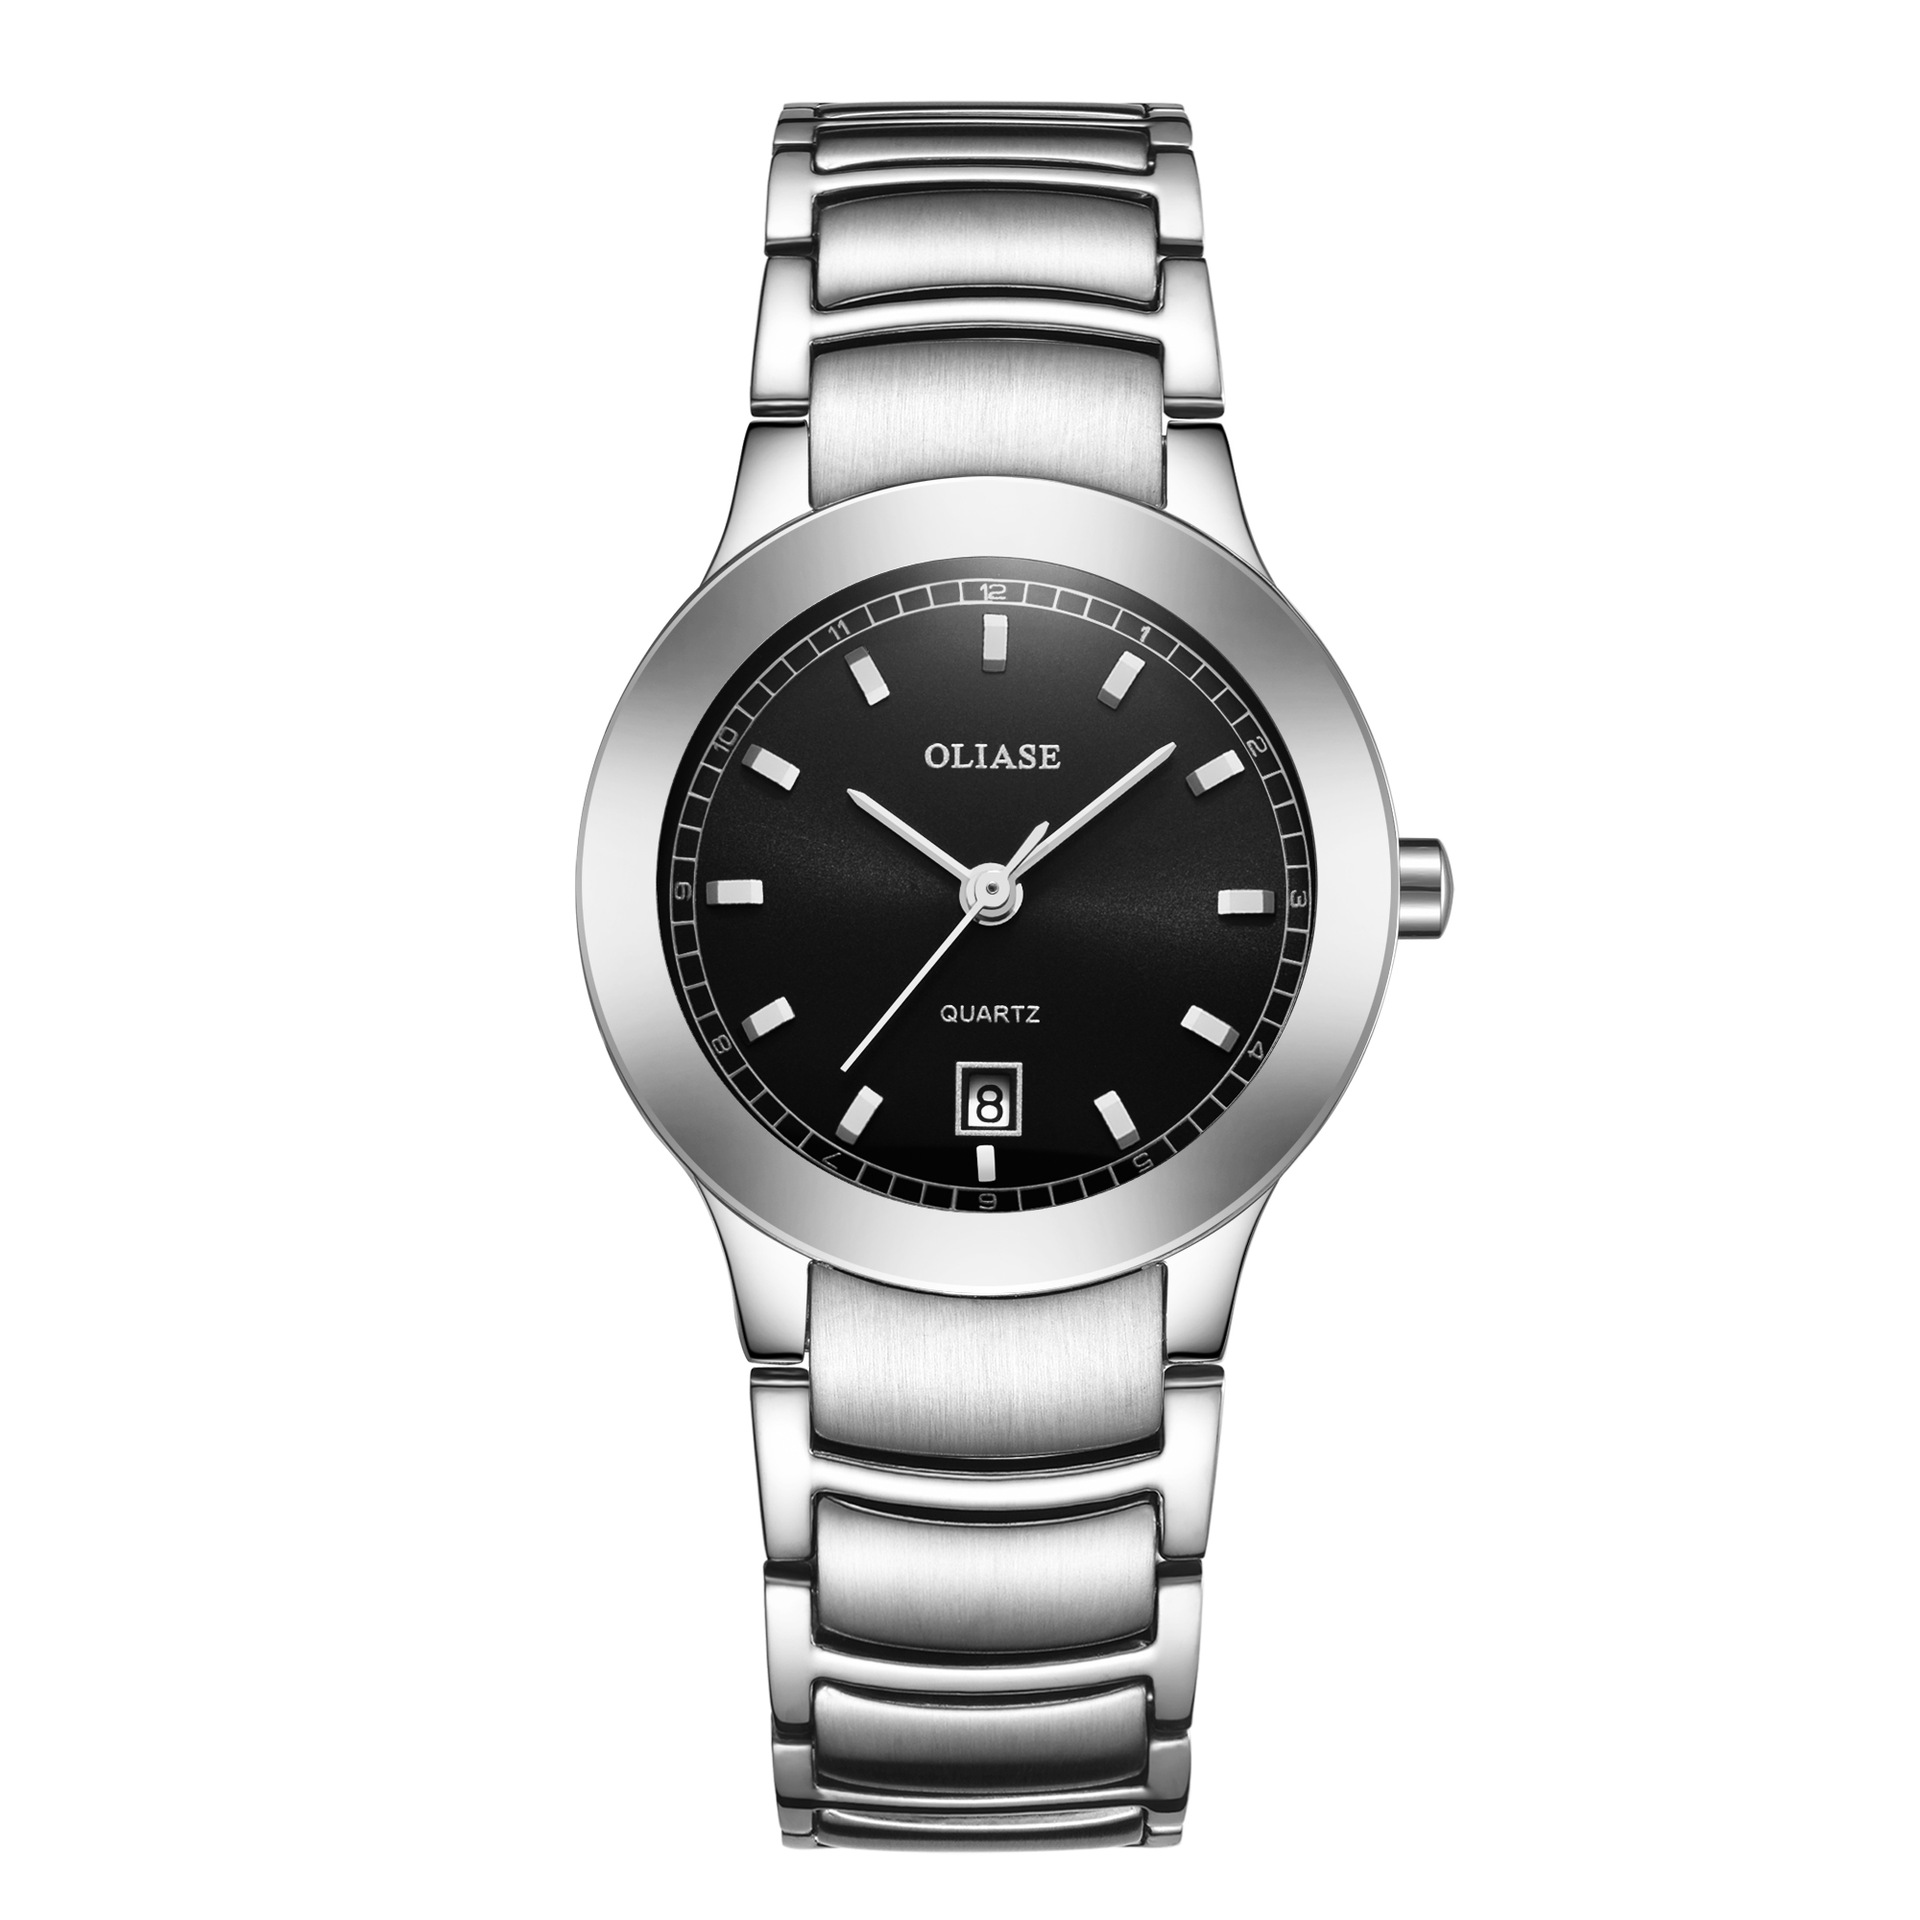 OLIASE Waterproof sliver Watch Women Quartz Watches Ladies Top Brand Luxury Female Wrist Watch Girl Clock Relogio Feminino top brand luxury waterproof women watches women quartz hours date clock ladies casual wrist watch female silver relogio feminino